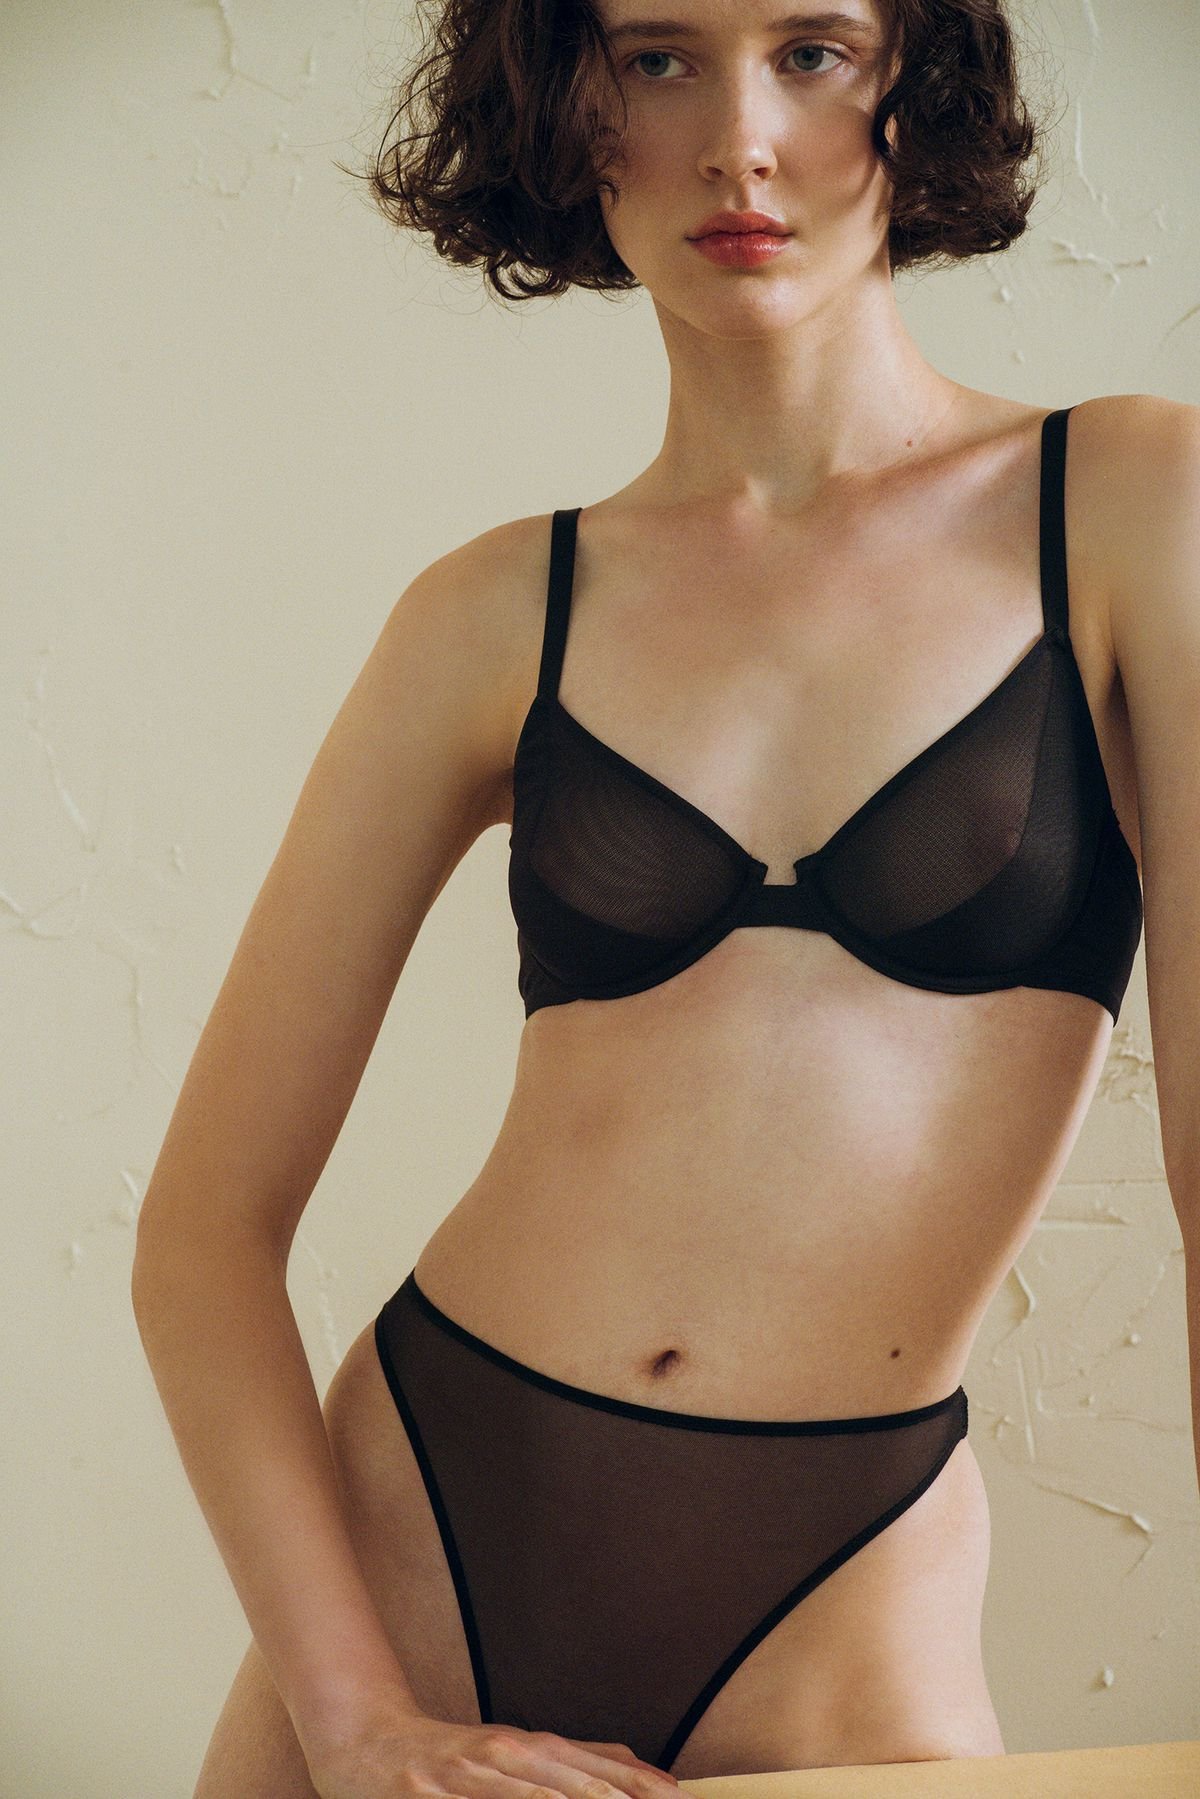 cf8dfadc5cc2 The Best Places to Shop for Bras, Lingerie, and Underwear - Vox